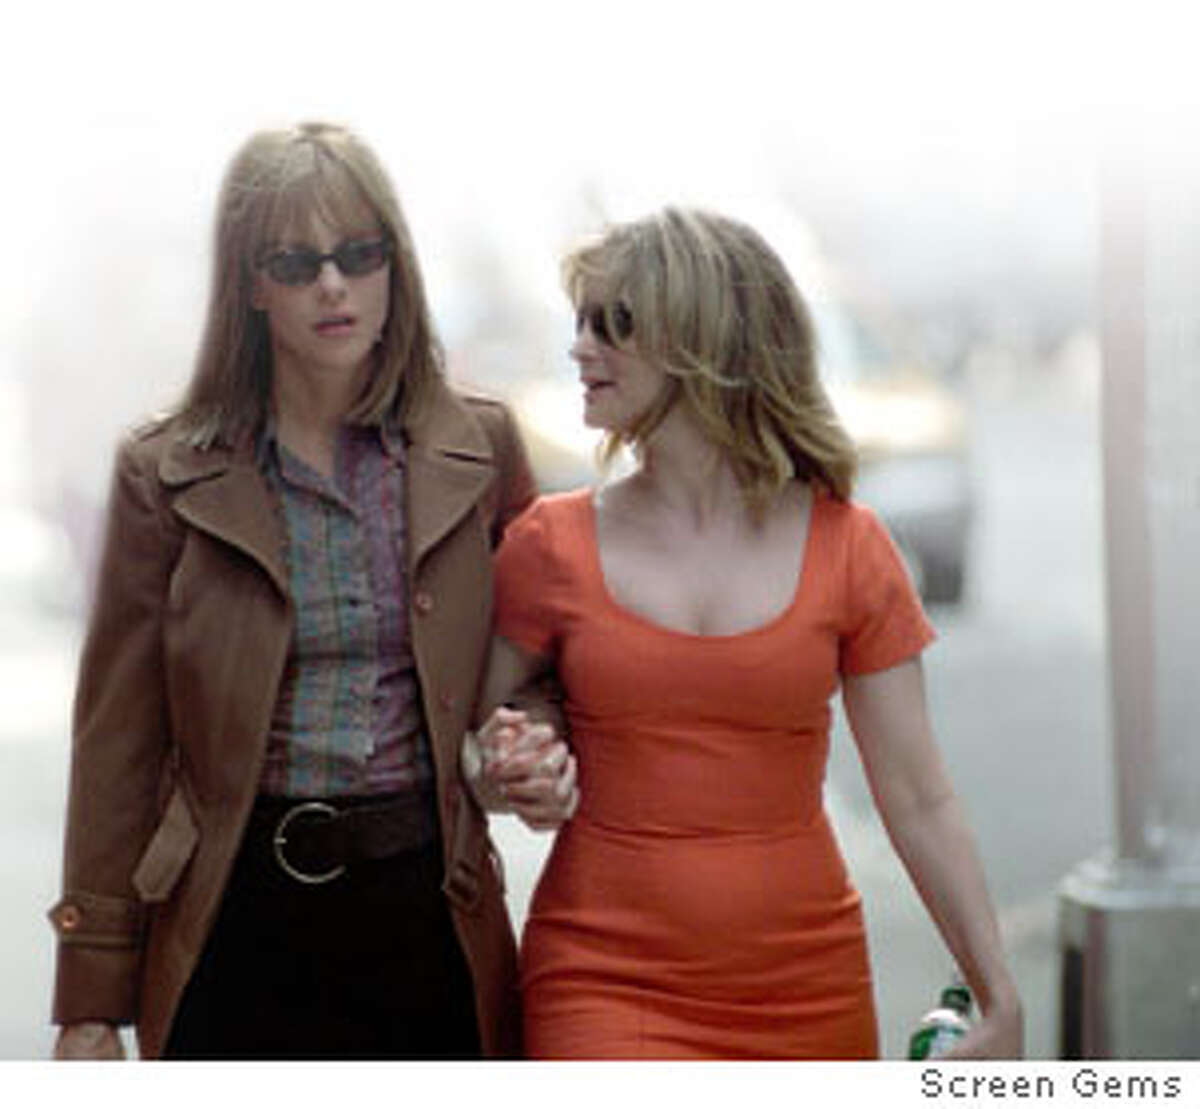 Actresses Meg Ryan (L) and Jennifer Jason Leigh, are shown in a scene from their new drama film